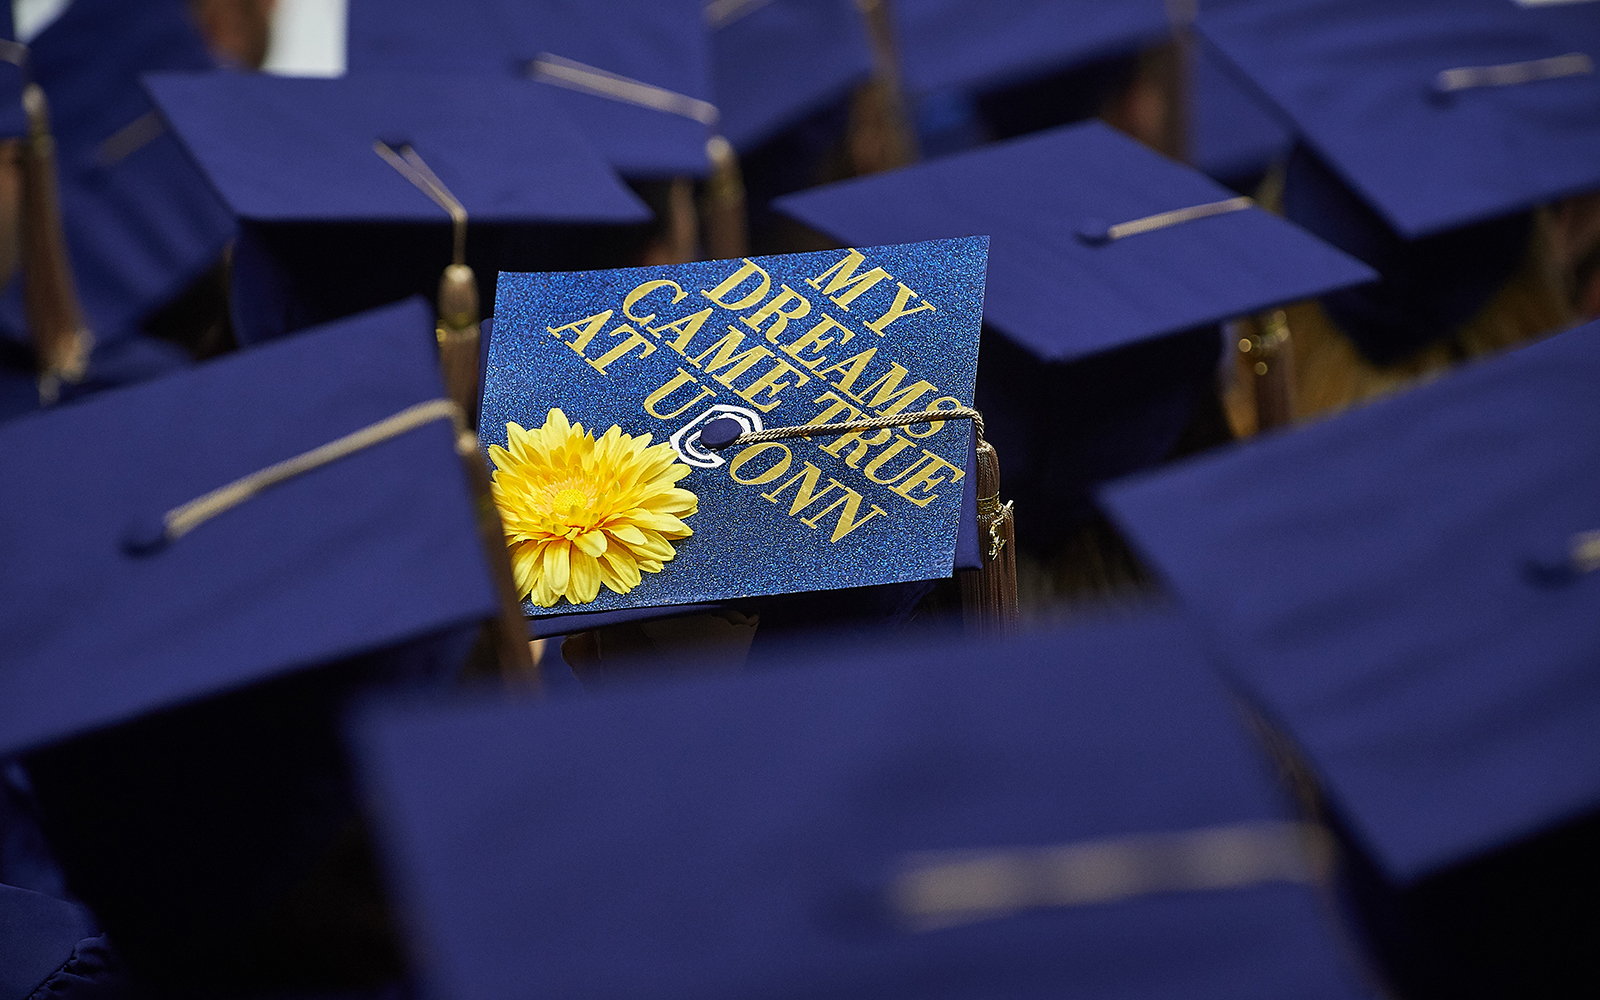 A cap seen during the School of Business Commencement ceremony at Gampel Pavilion on May 7, 2017. (Peter Morenus/UConn Photo)